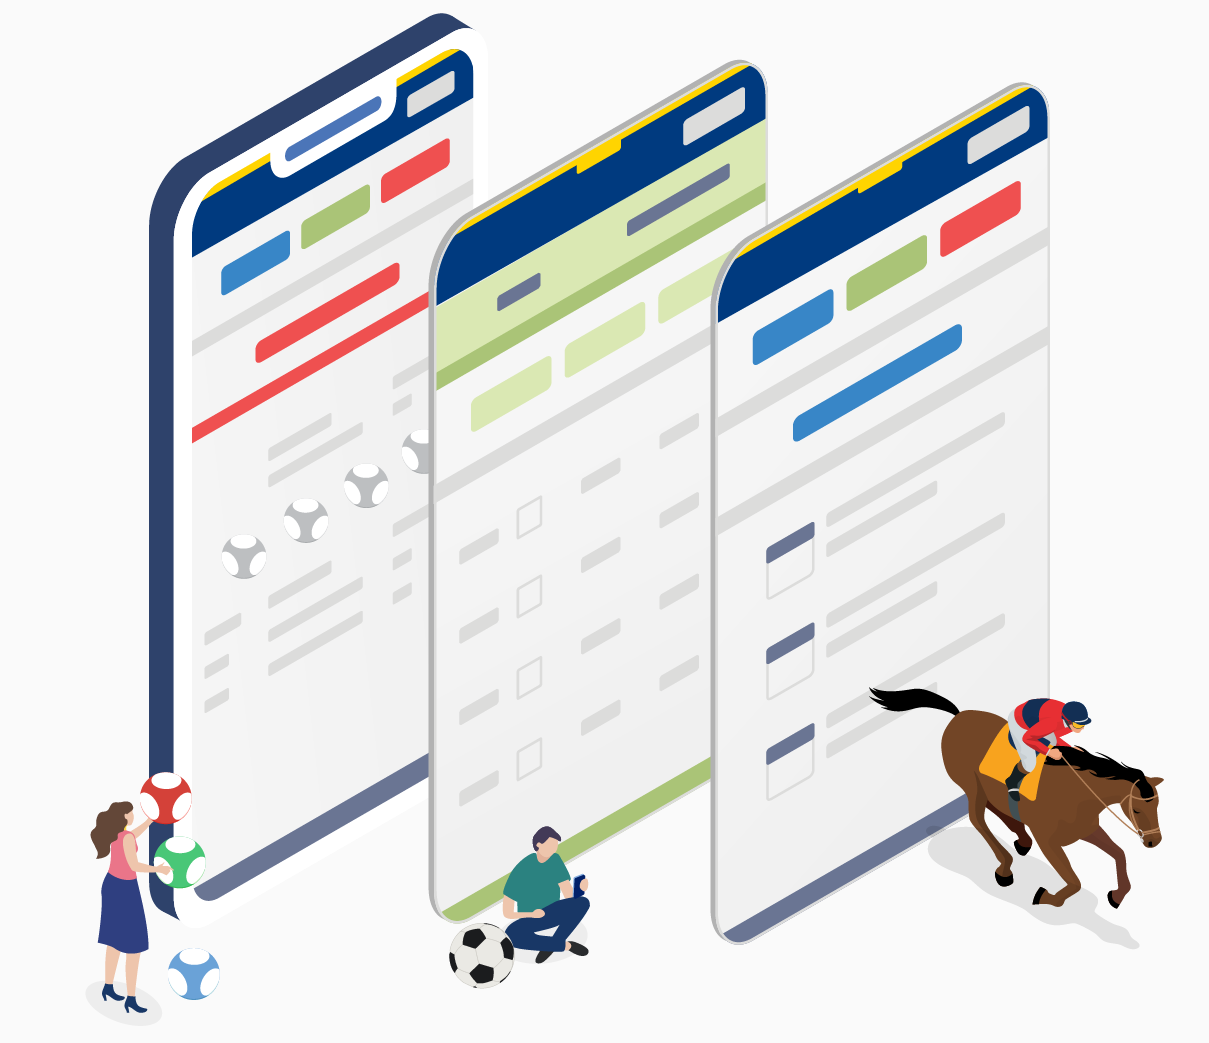 Hkjc betting applications betting and gambling commissioner